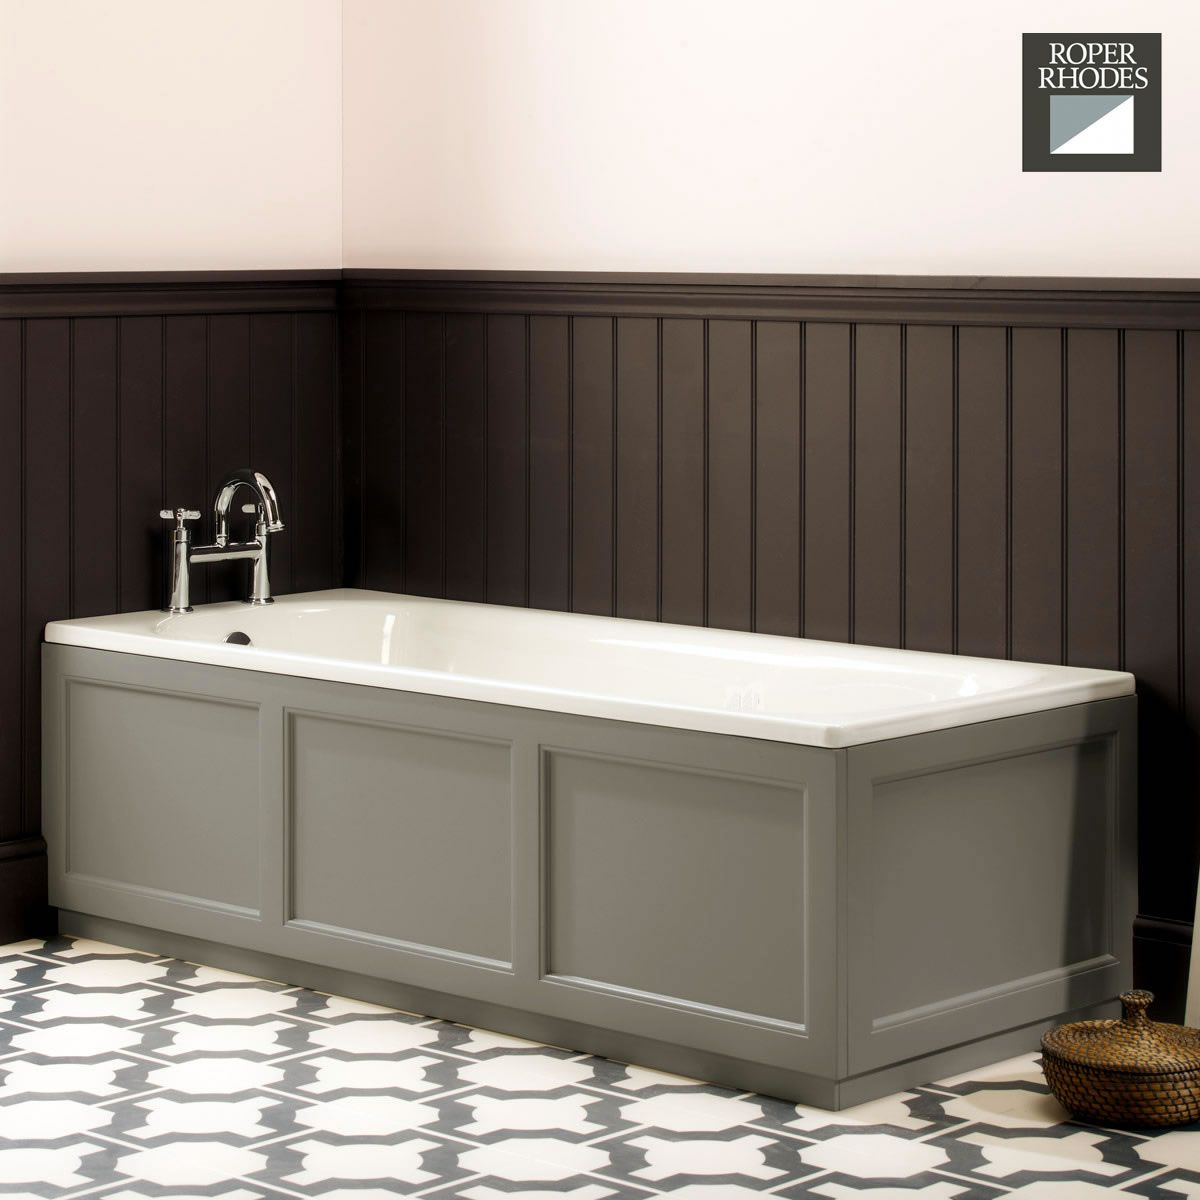 Roper Rhodes Hampton Bath Panels Uk Bathrooms